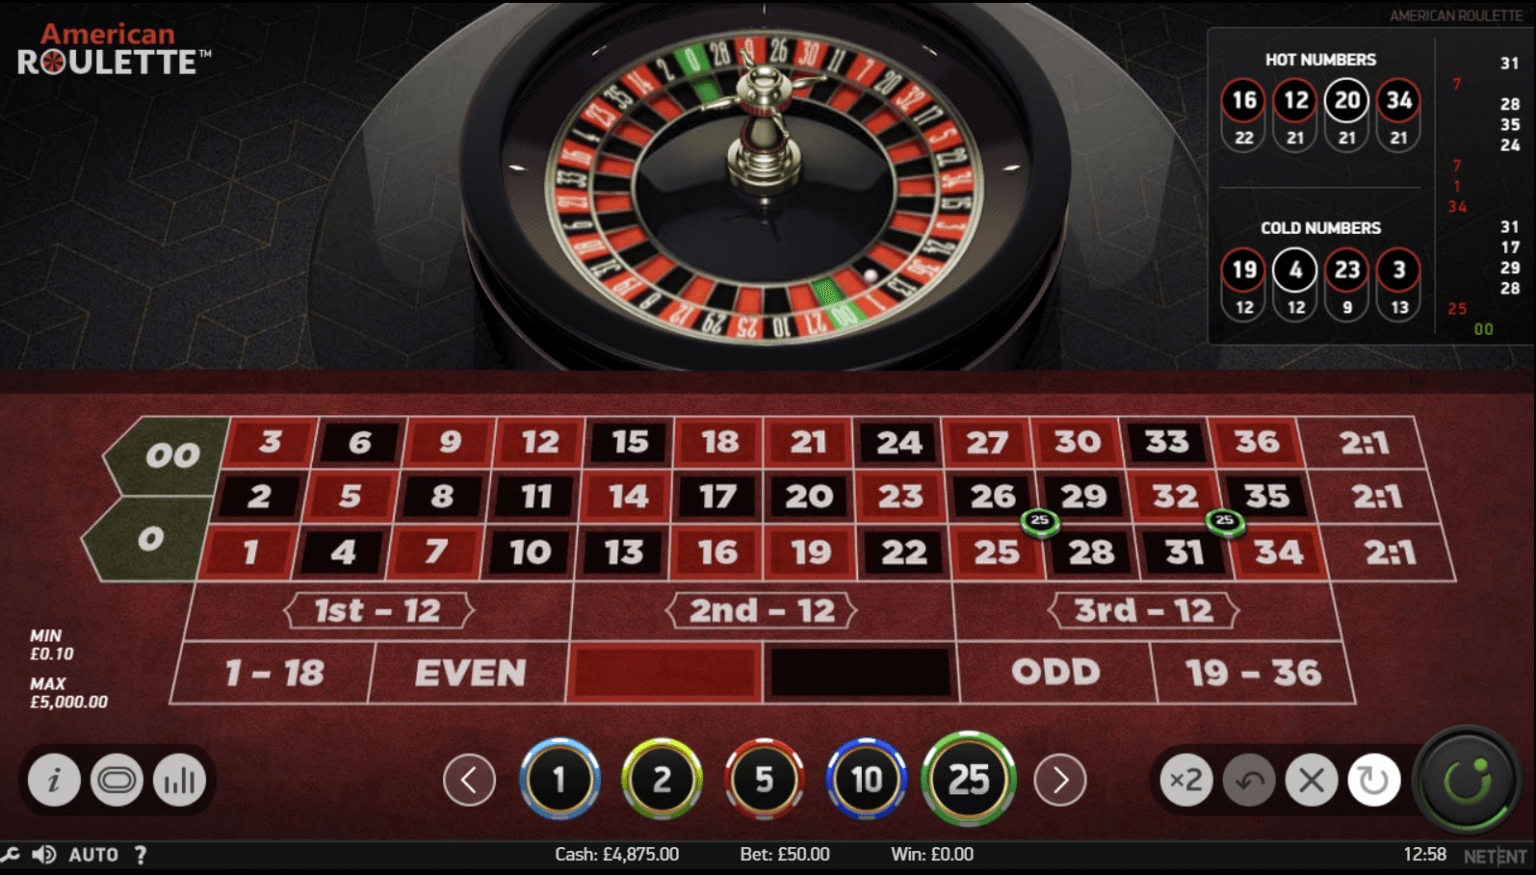 A screenshot of NetEnt's American Roultte casino game. The image shows the betting table and roulette wheel.